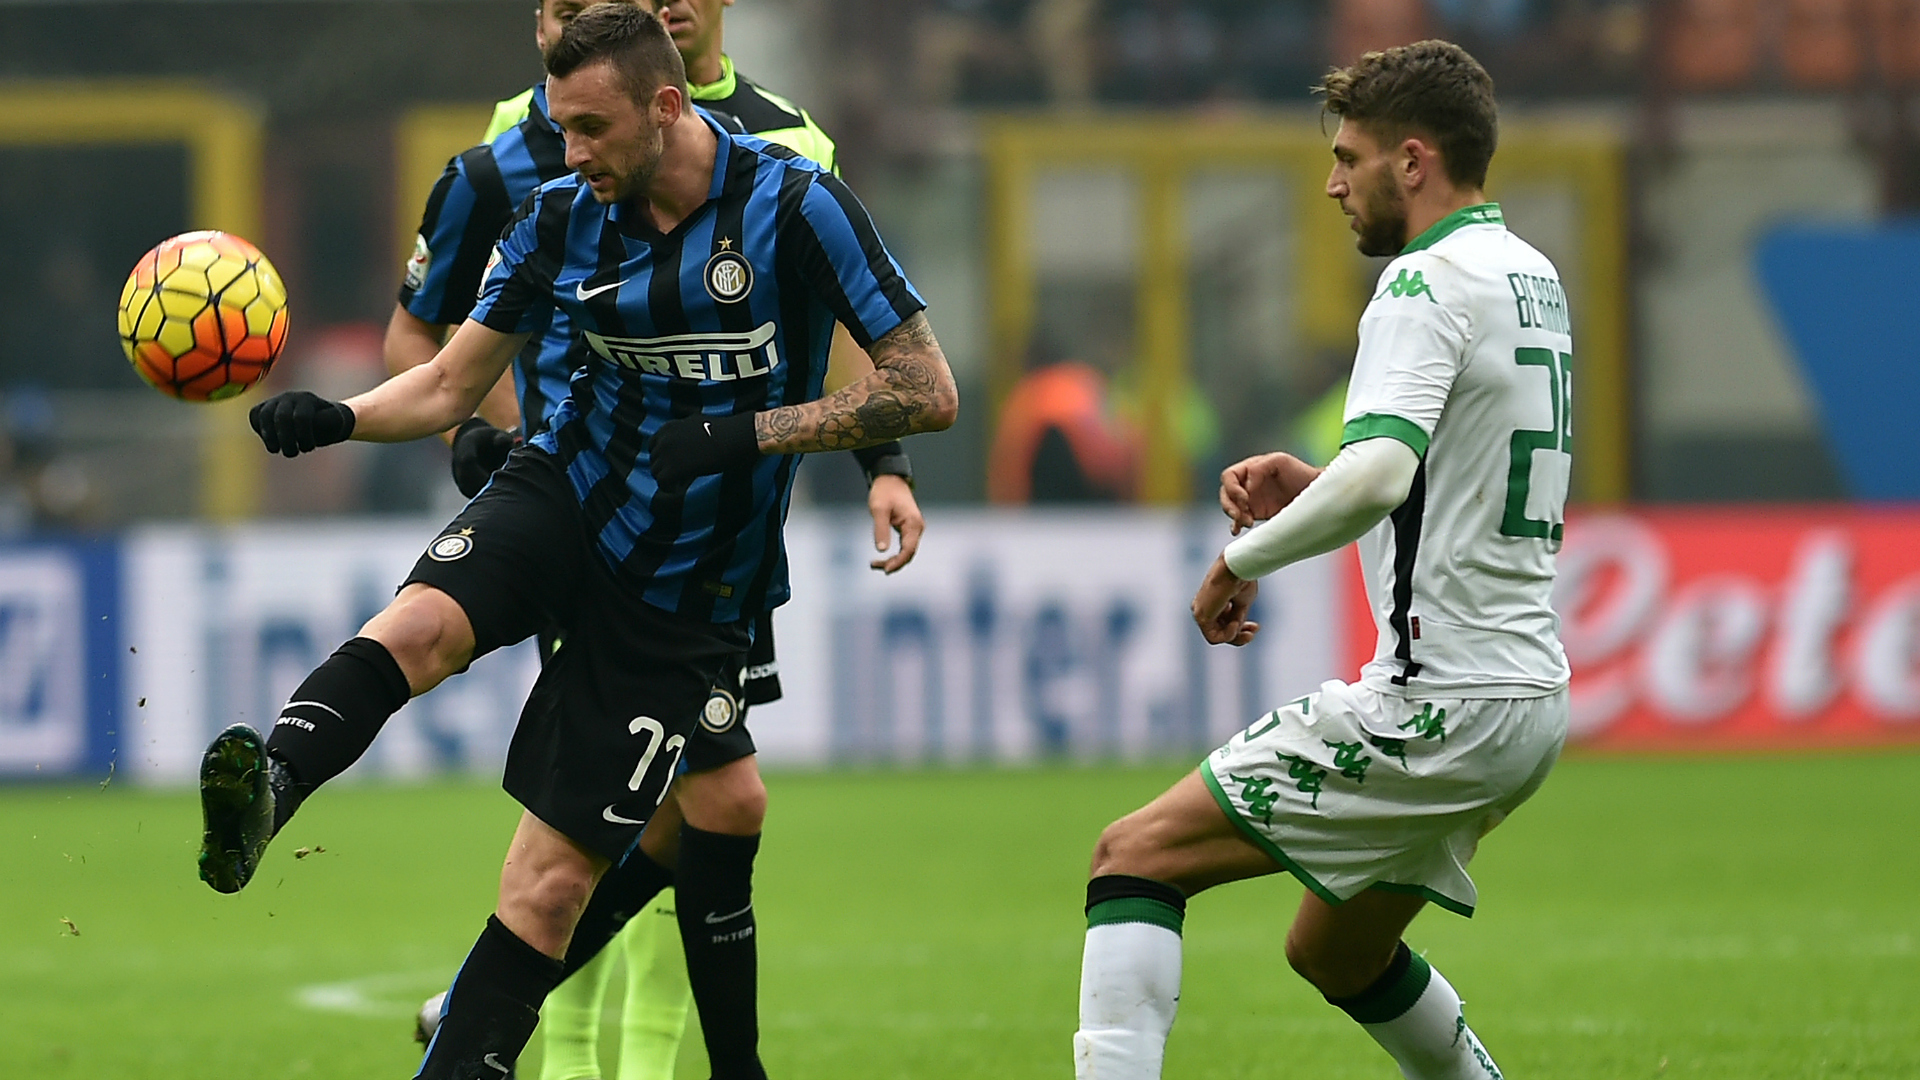 Video: Inter Milan vs Sassuolo